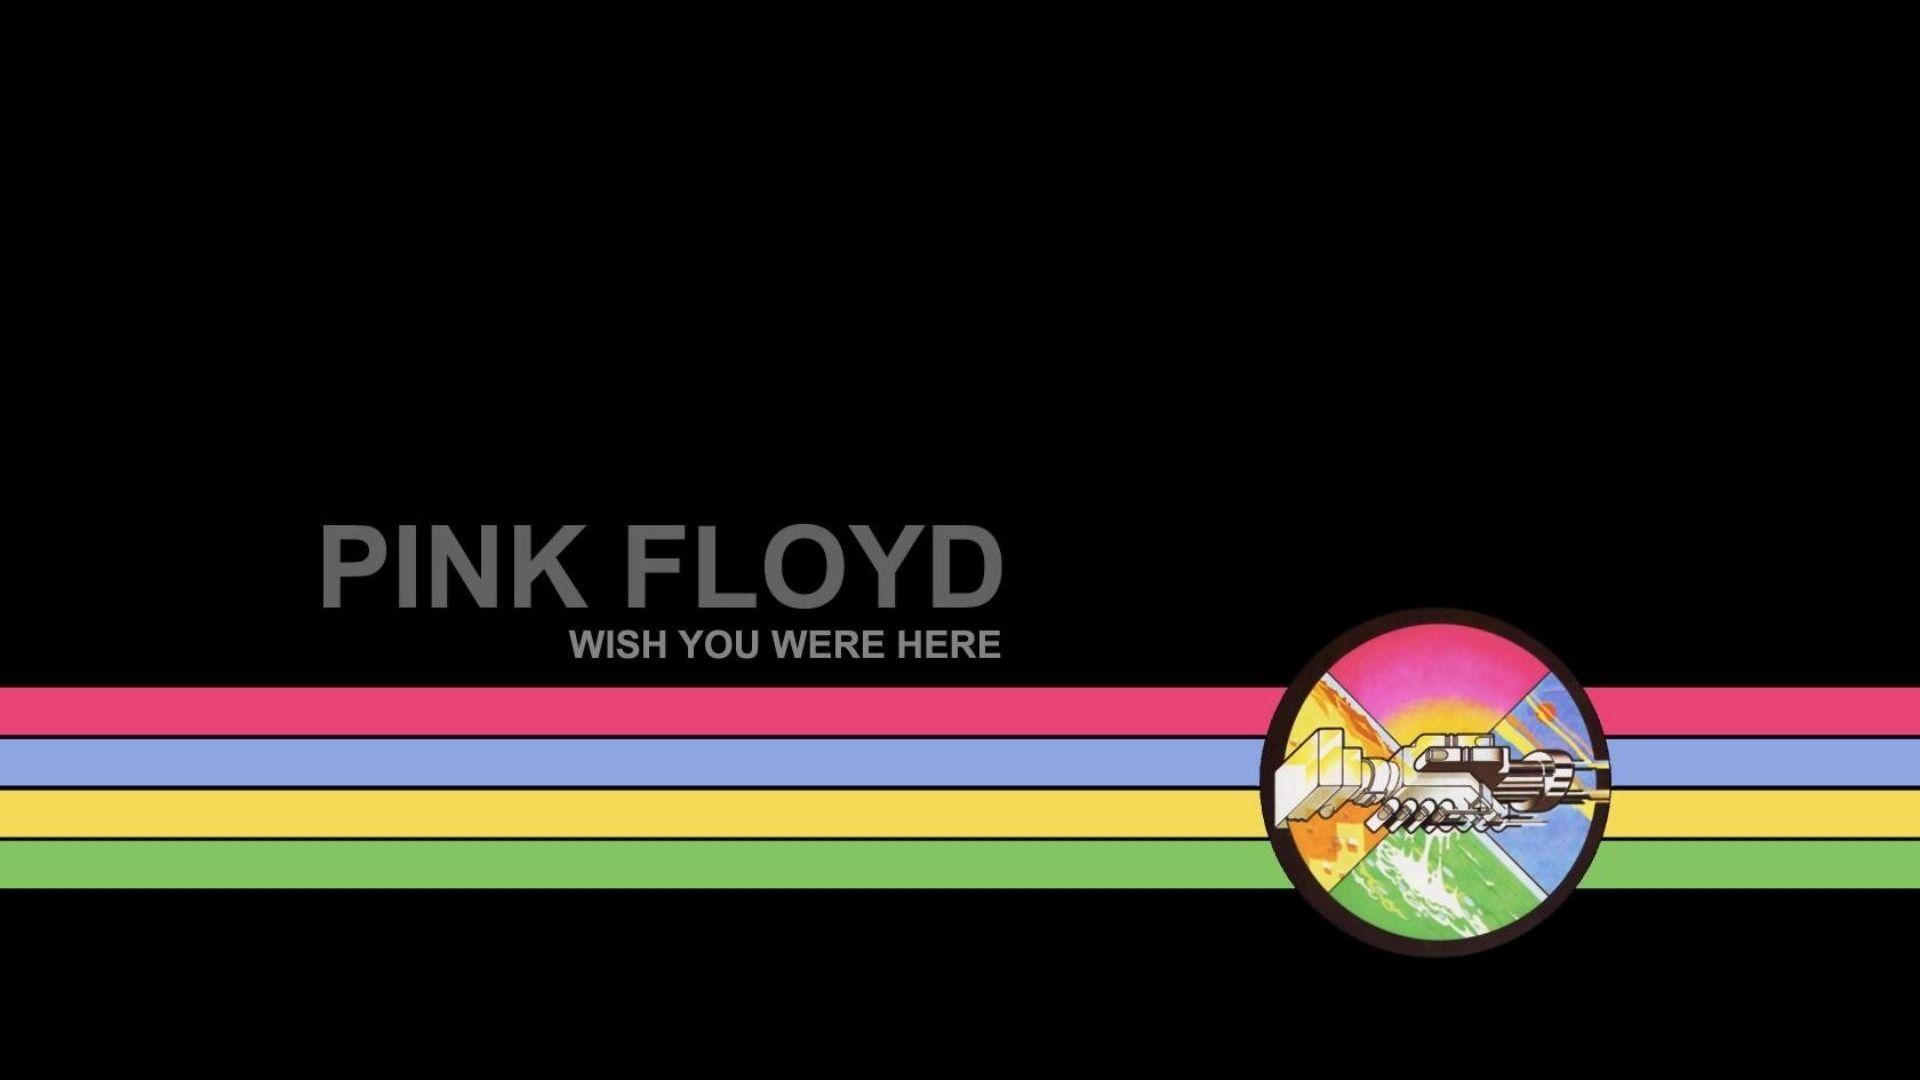 Free Pink Floyd Wallpapers - Wallpaper Cave